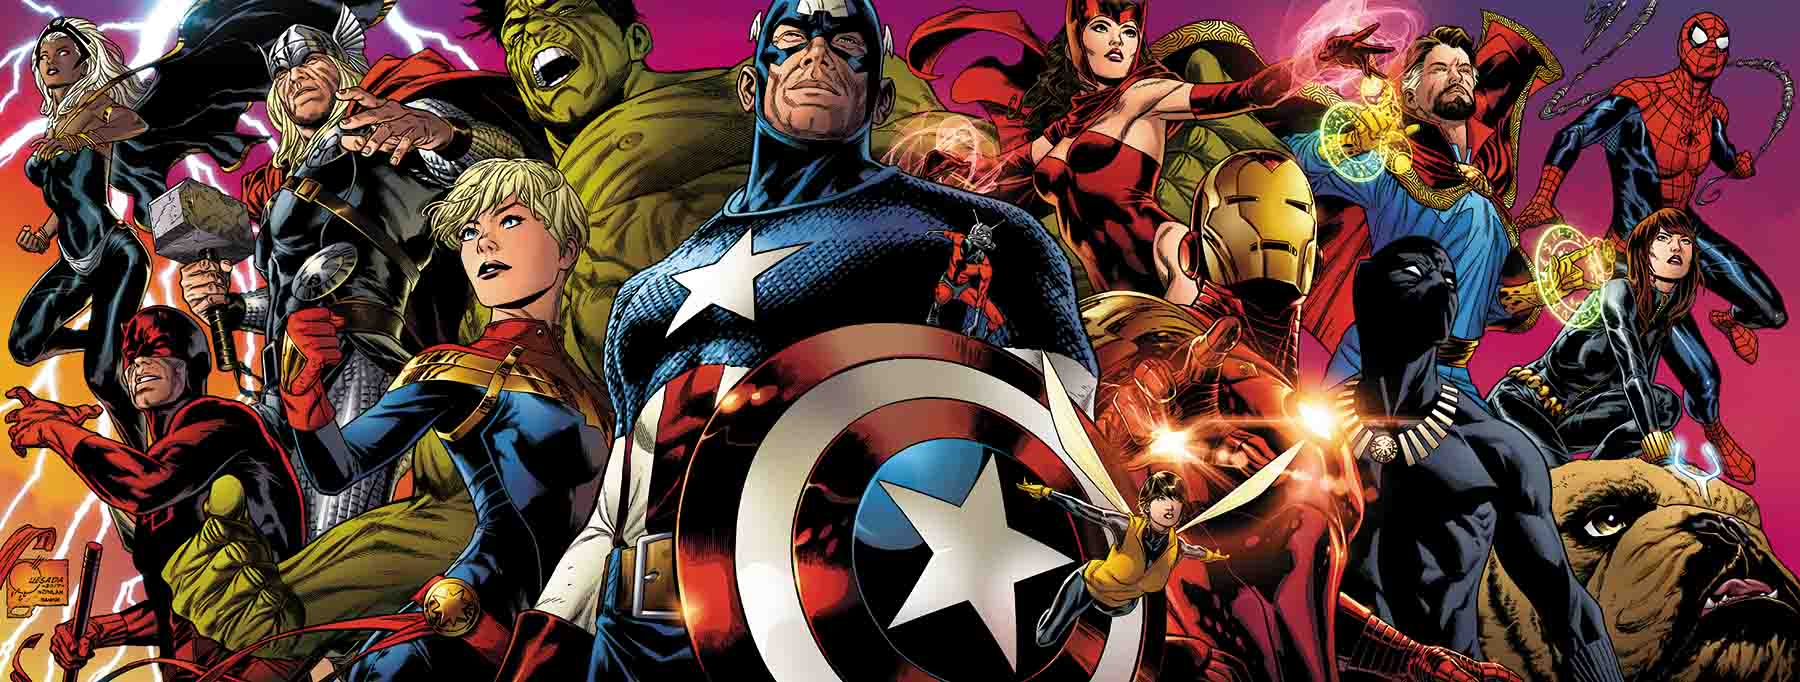 Details Concerning The Marvel Legacy Initiative Emerge